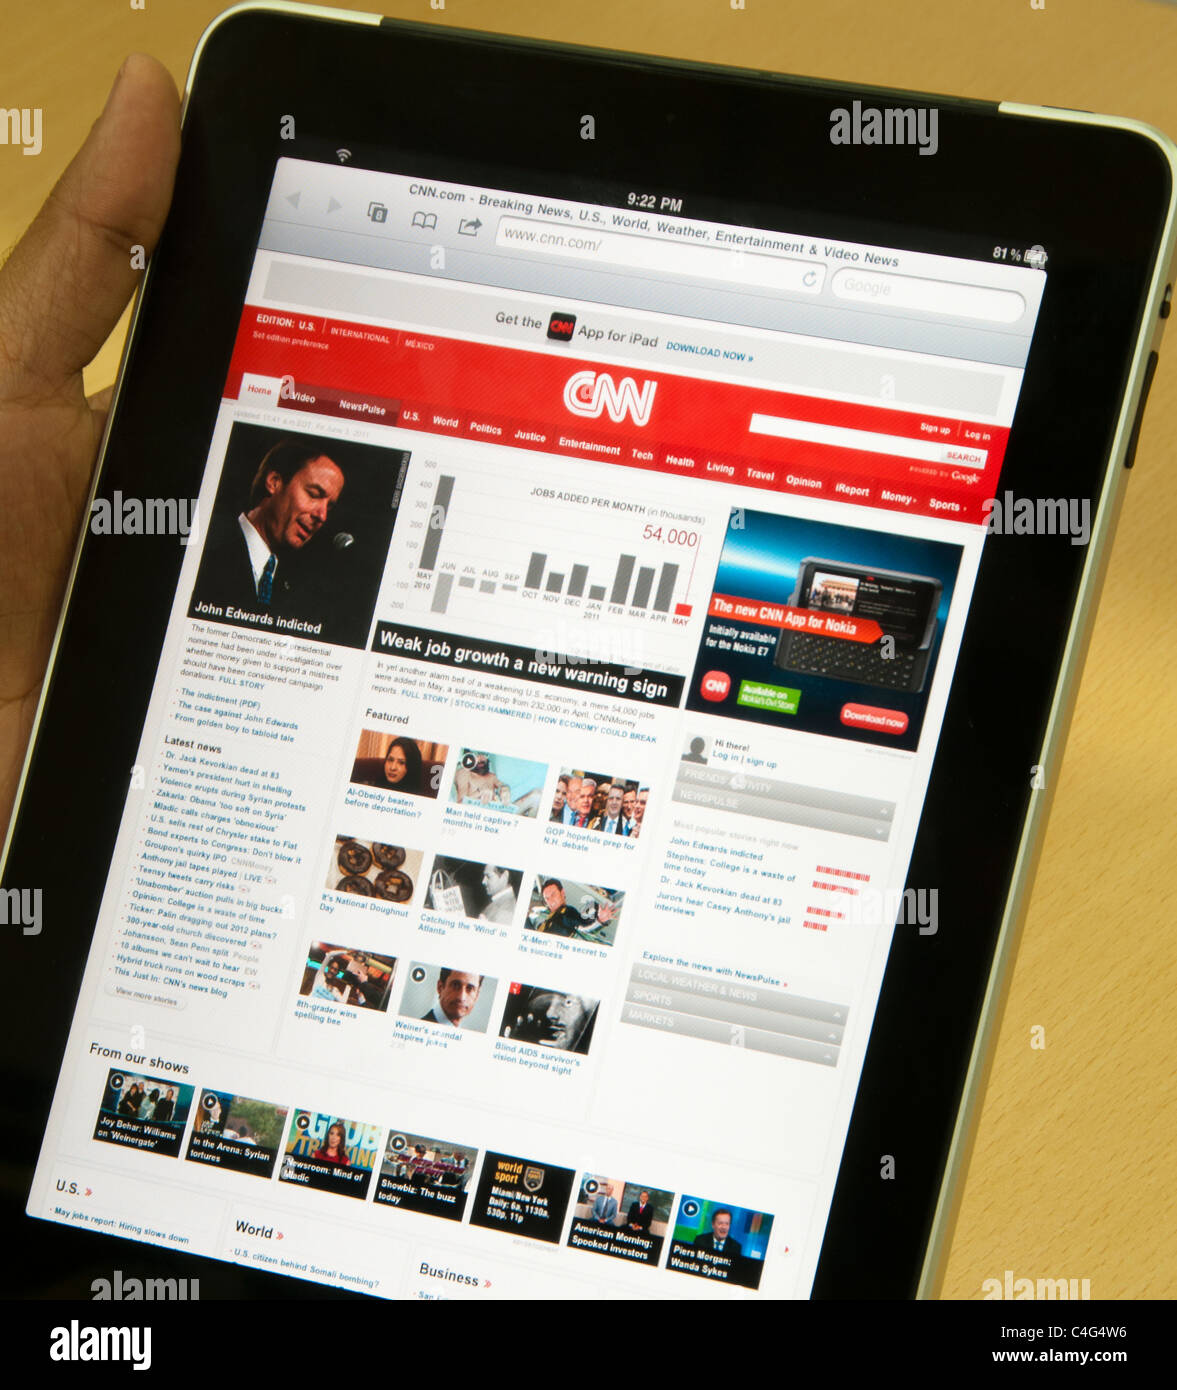 iPad with CNN online website showing global markets news - Stock Image